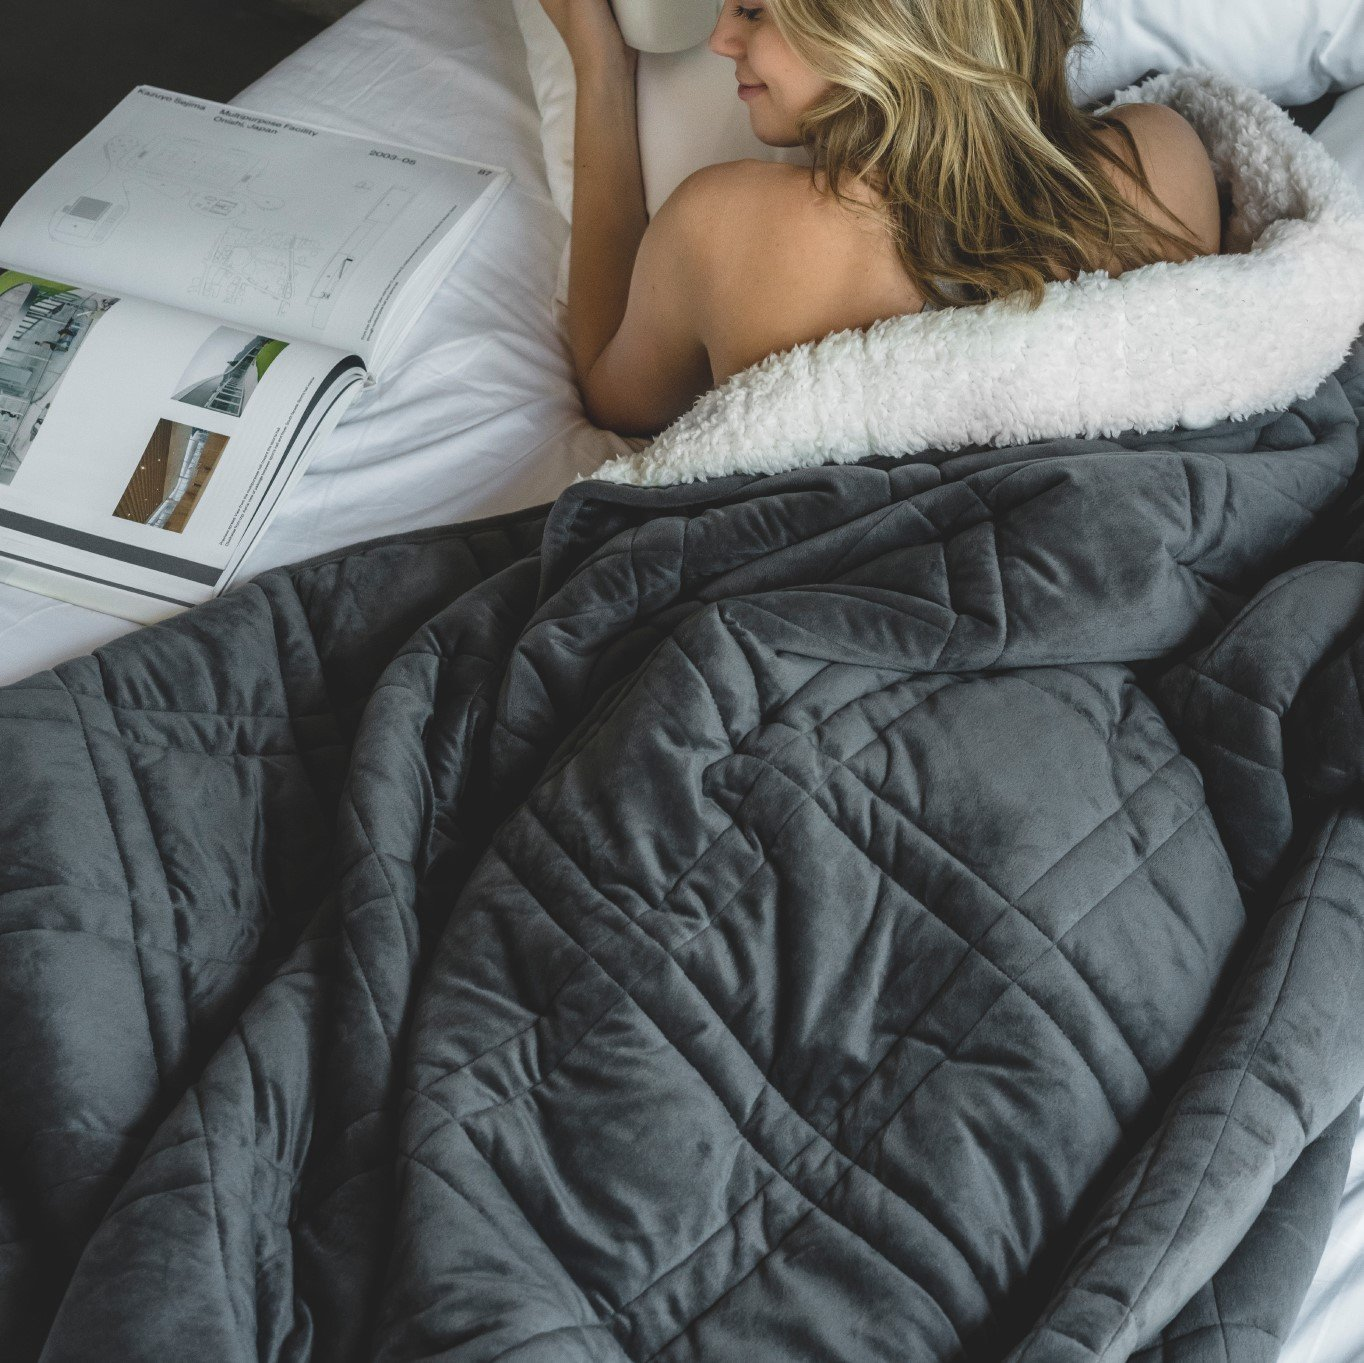 which weighted blanket is the best from comma?